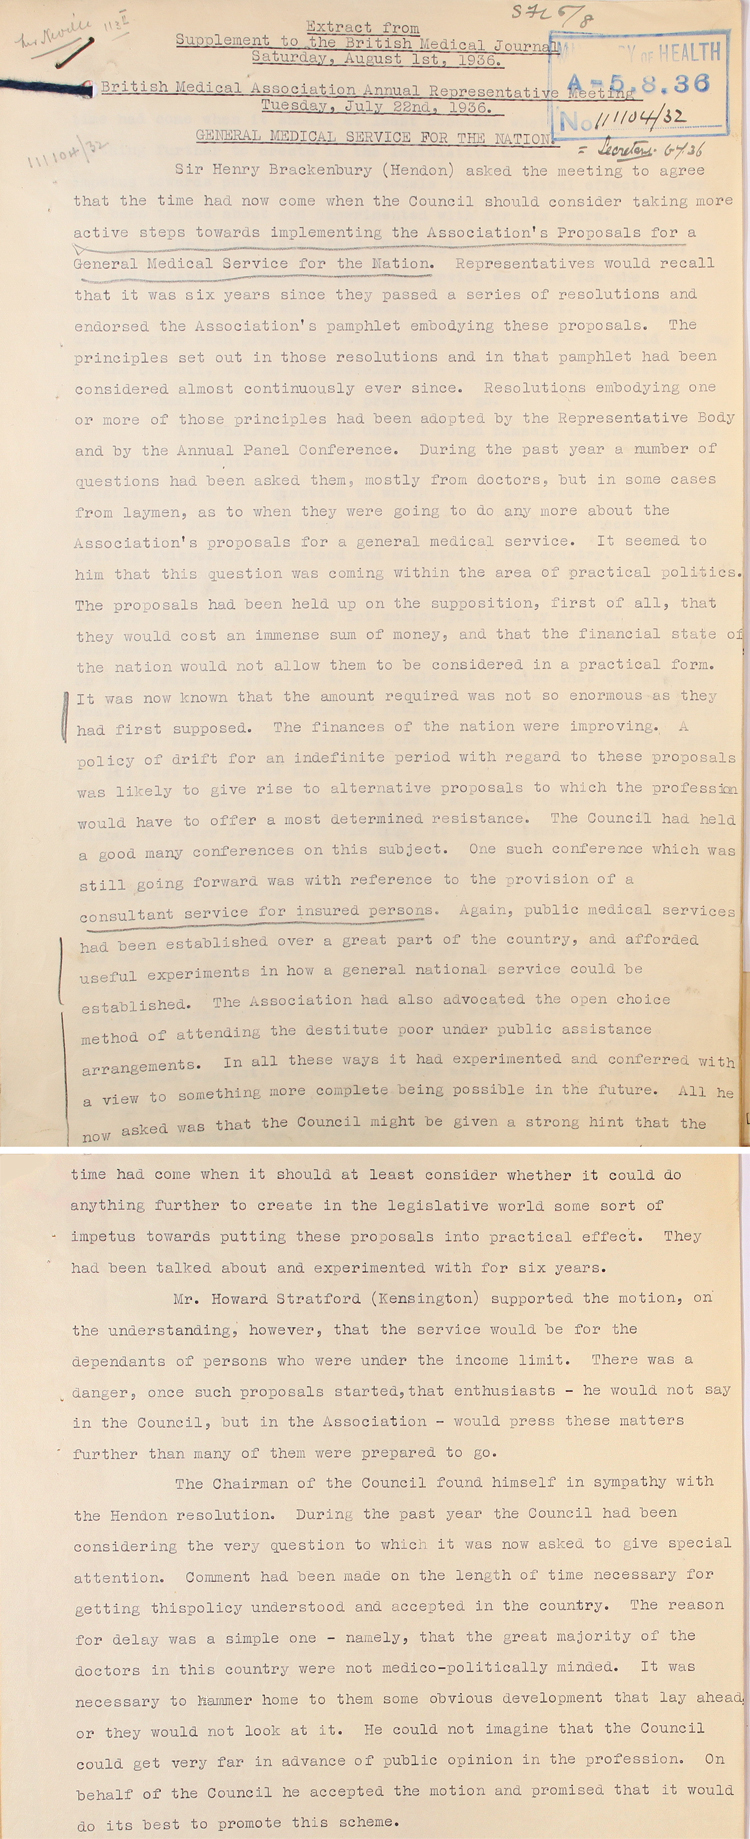 Extract from notes on British Medical Association annual meeting, 22nd July 1936 (MH 58/338)